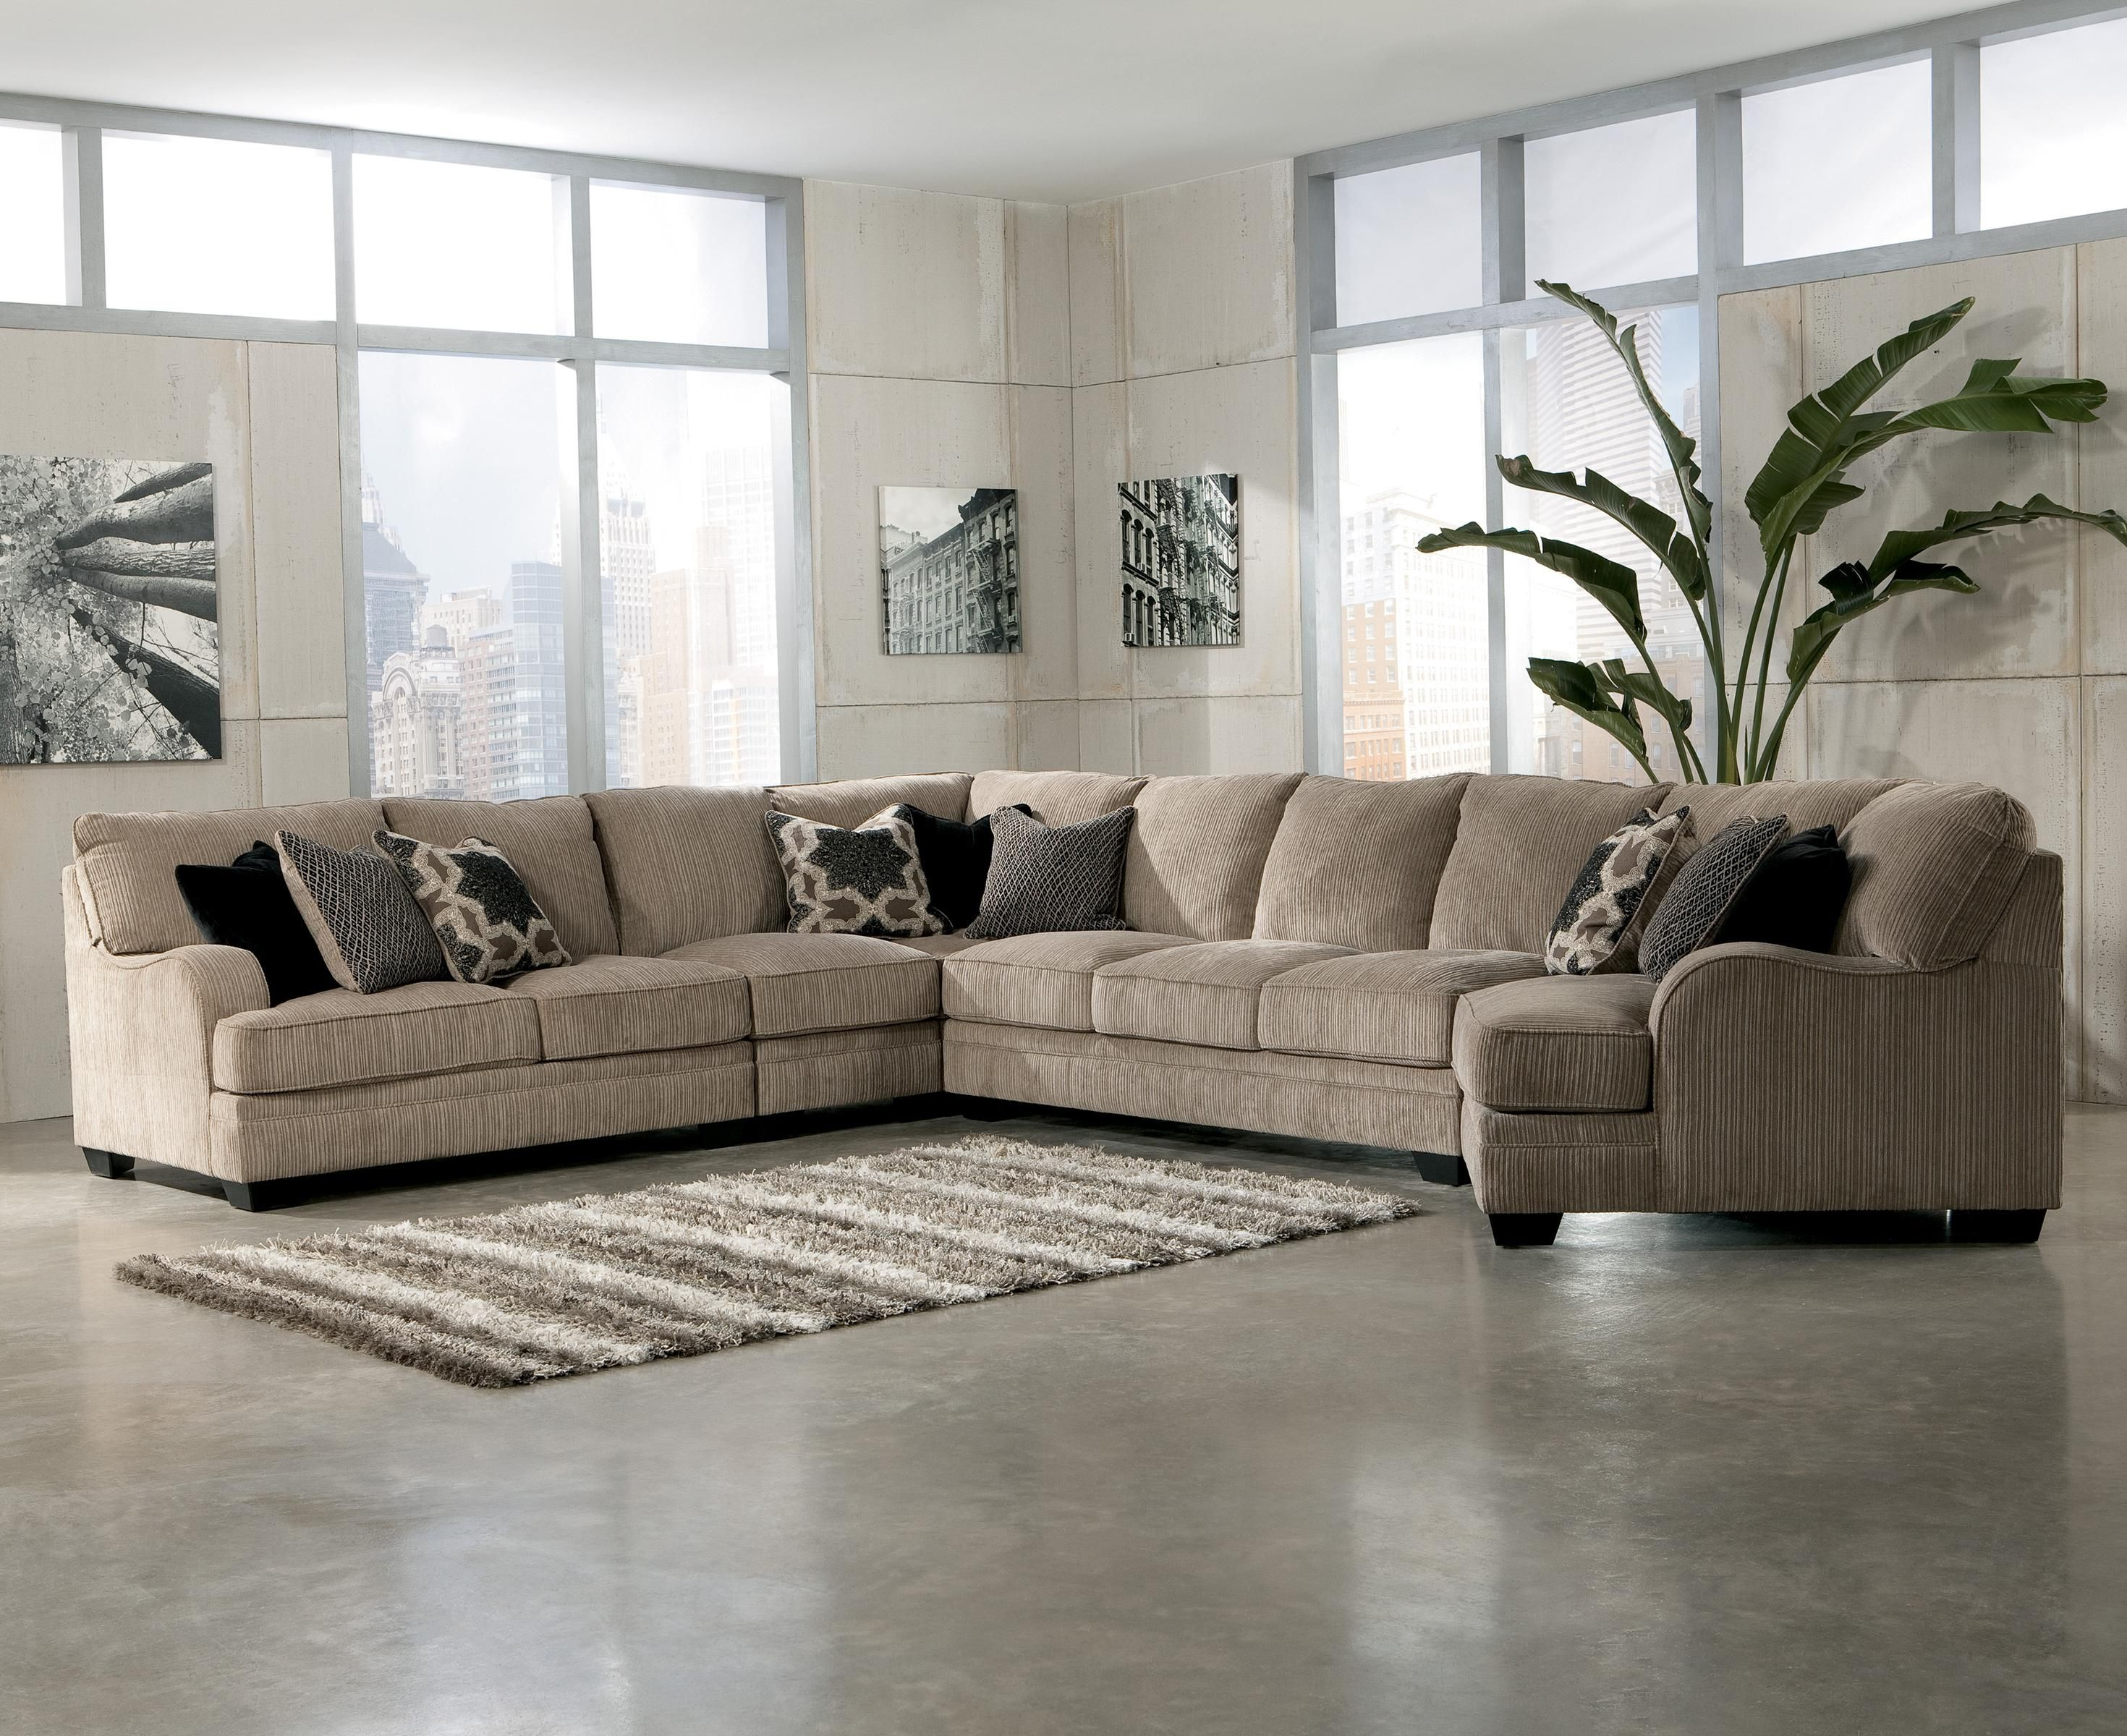 sofa colours Design Decoration